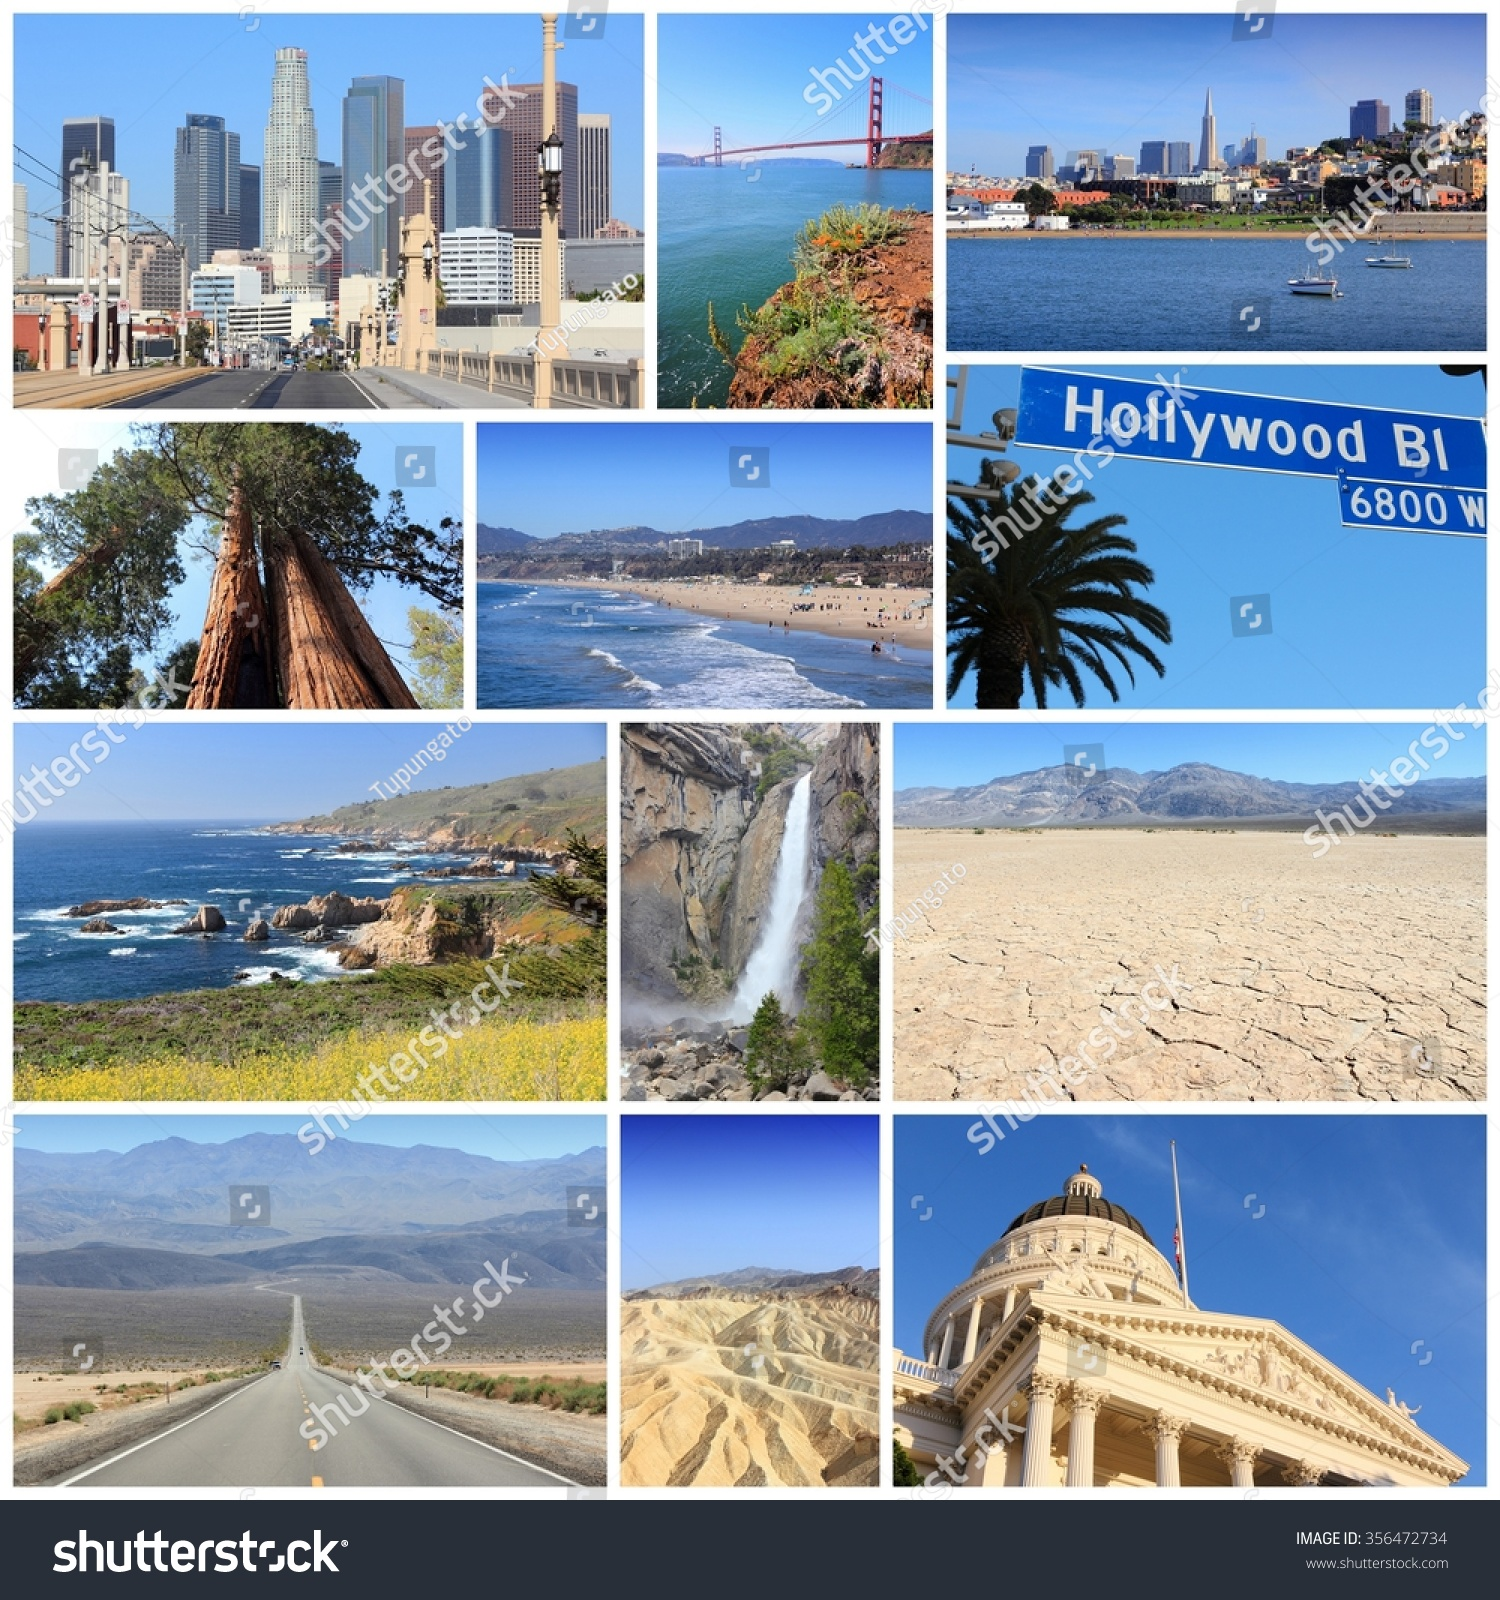 California Travel Collage Los Angeles San Foto de stock (libre de ...